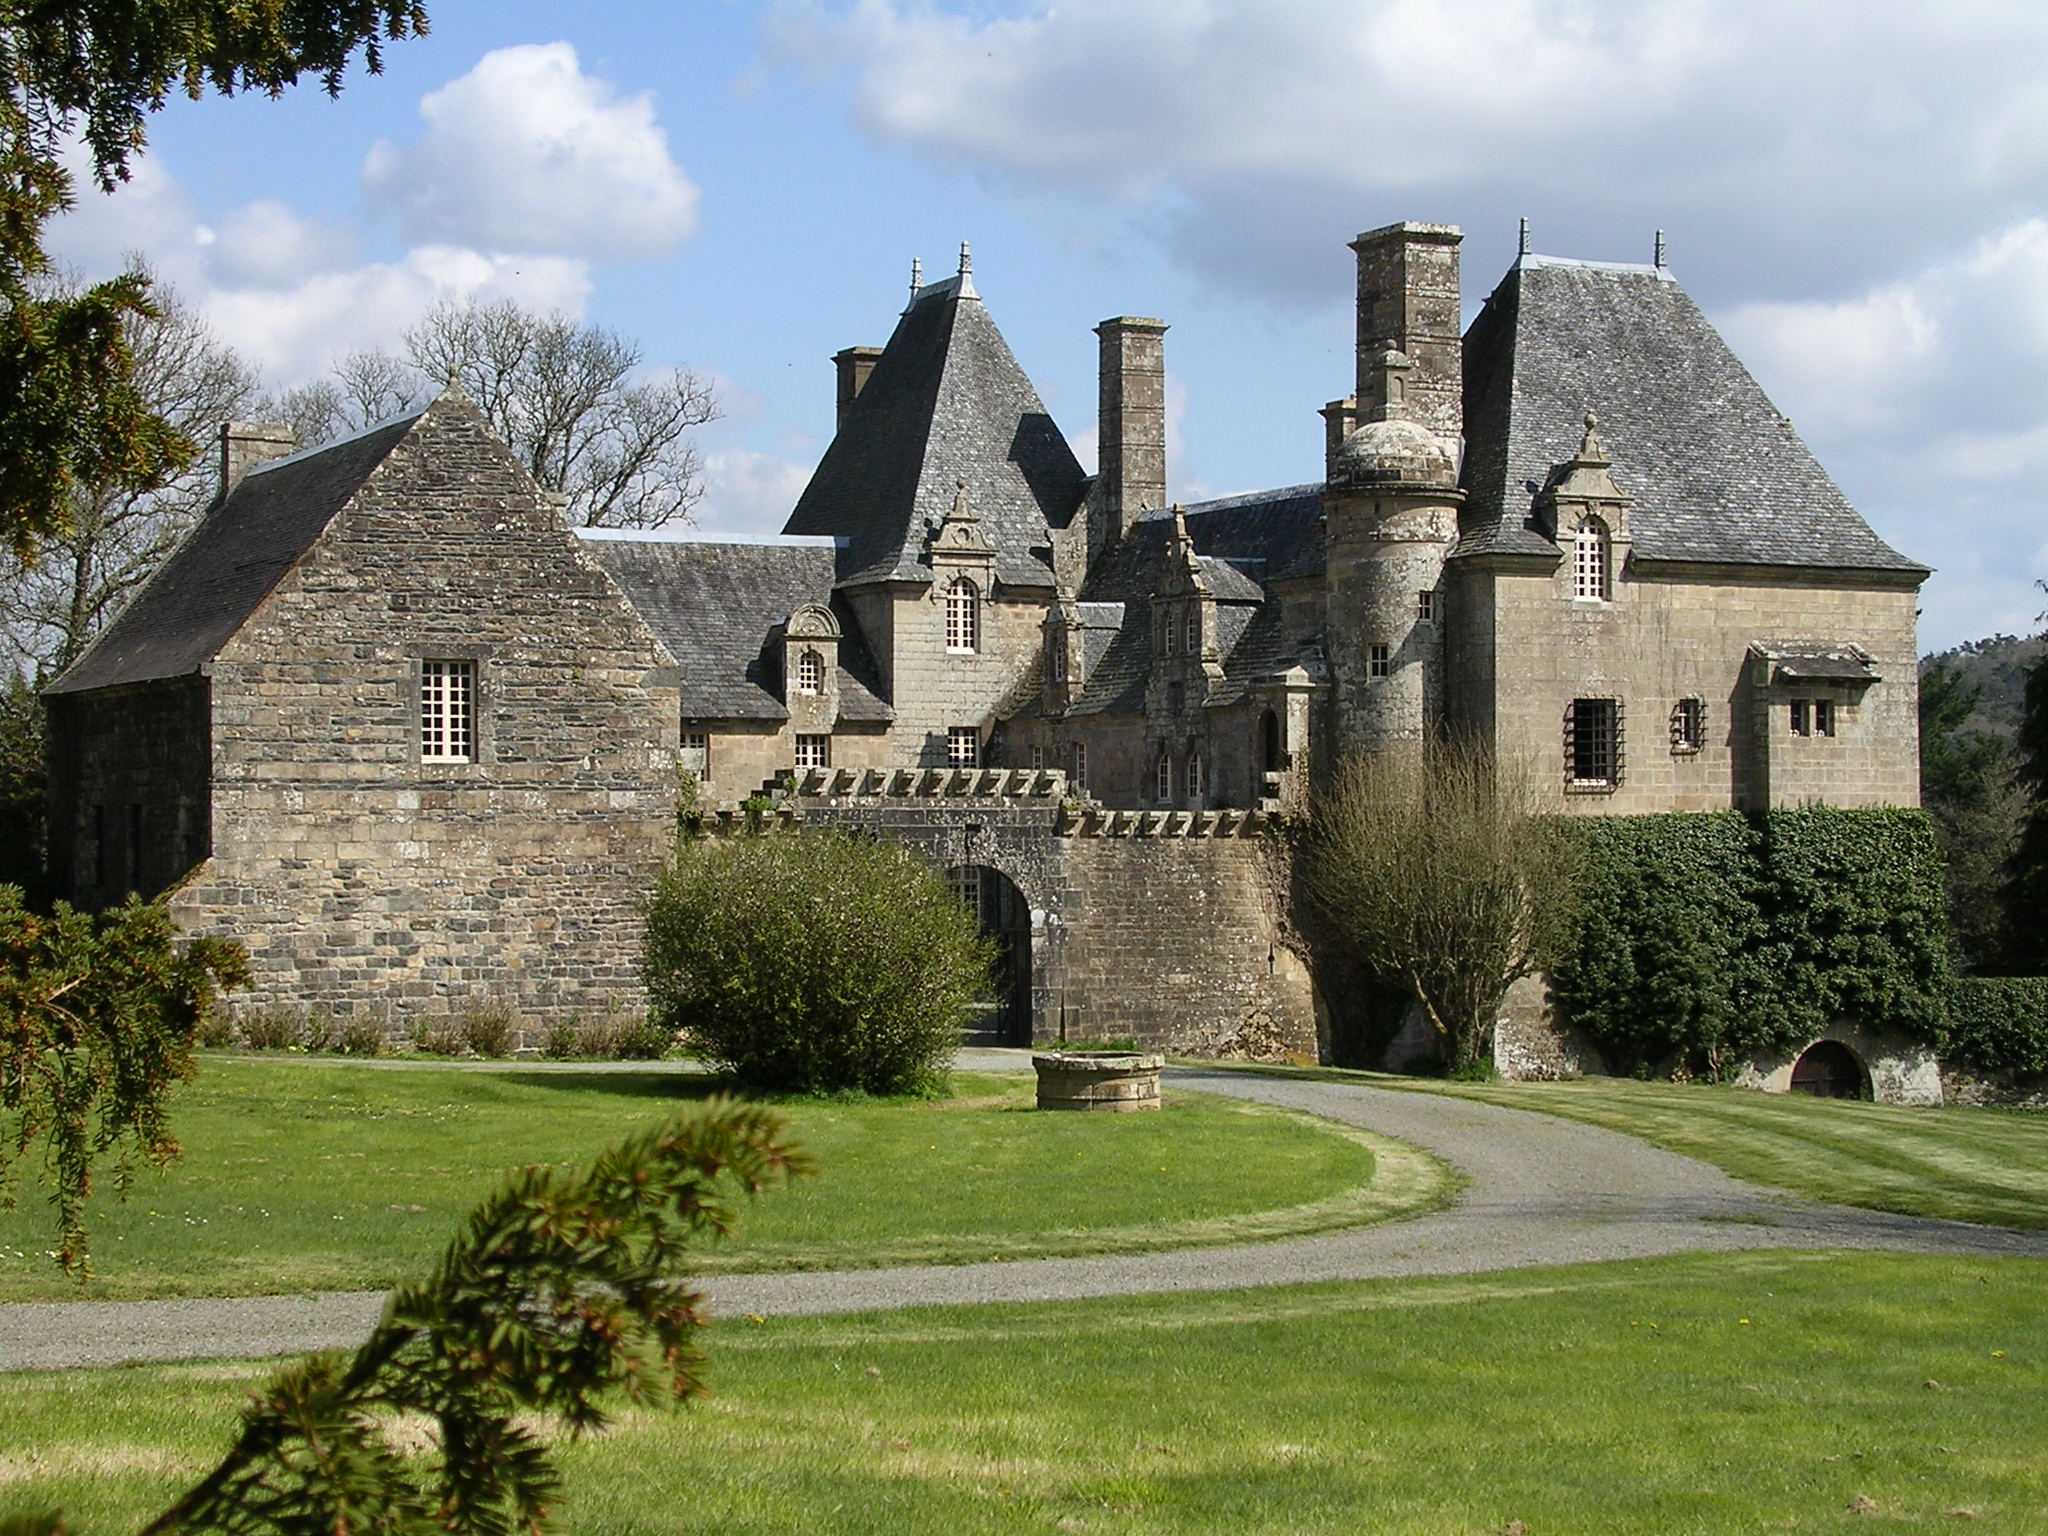 Le charme des ch teaux et manoirs en bretagne for Conception de plans de manoir